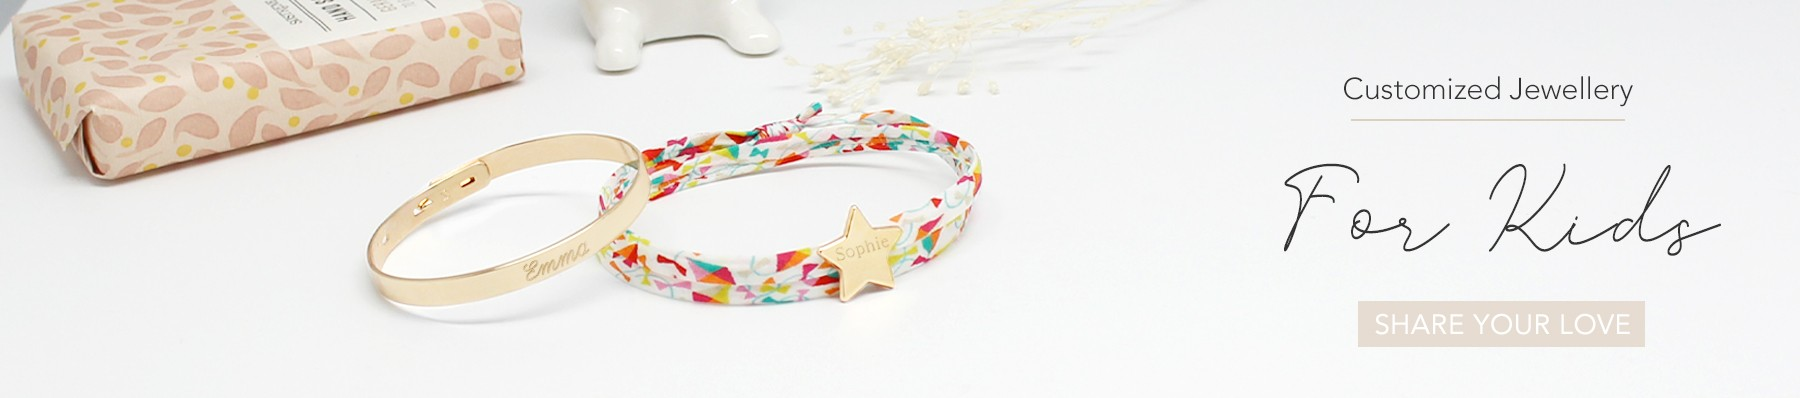 Customized jewellery for kids